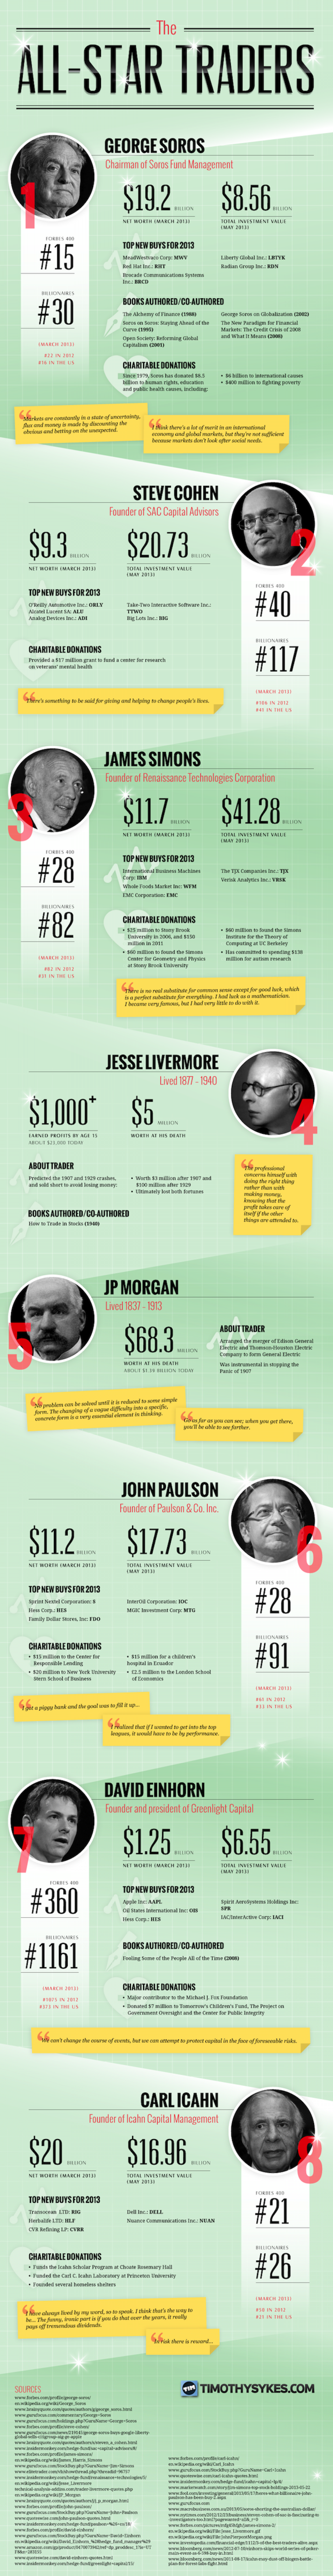 Wall Street's All-Star Traders  Infographic